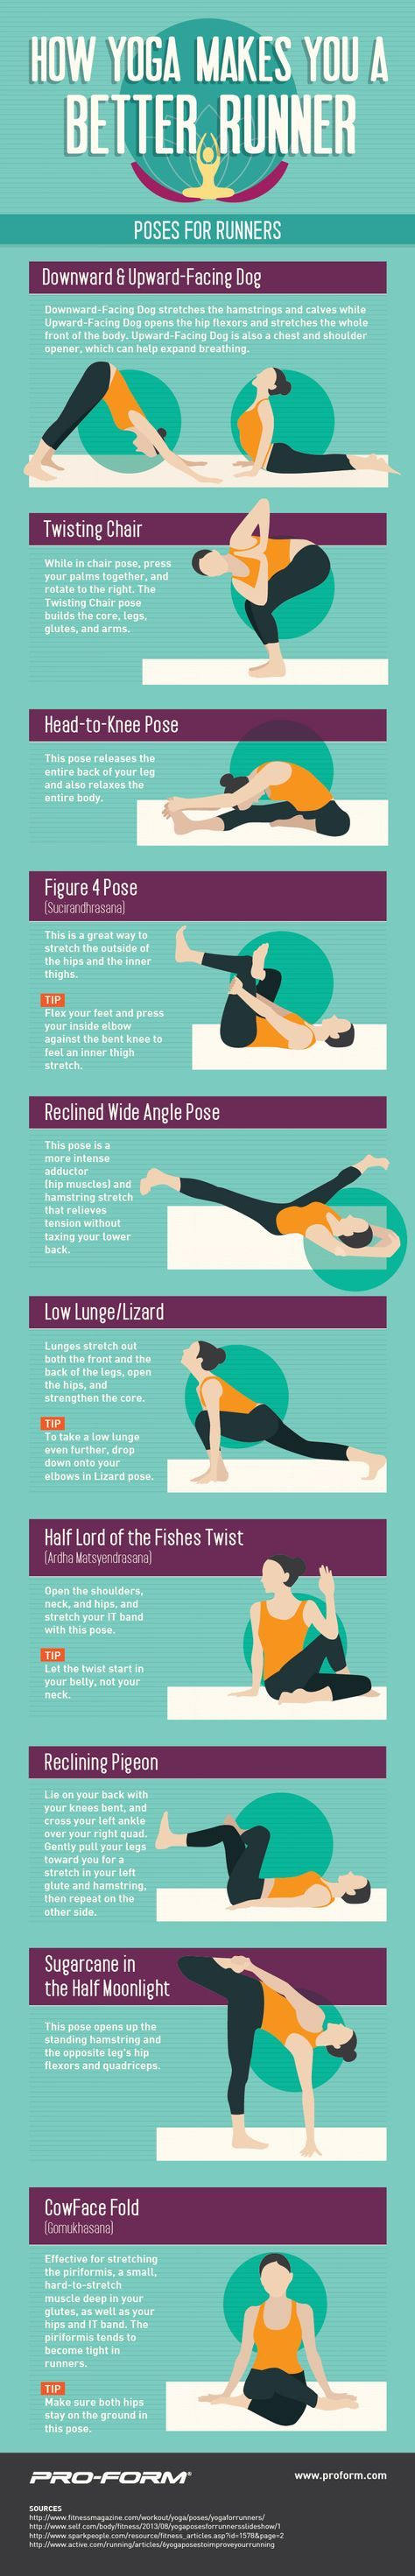 How yoga makes you a better runner poses for runners infographic